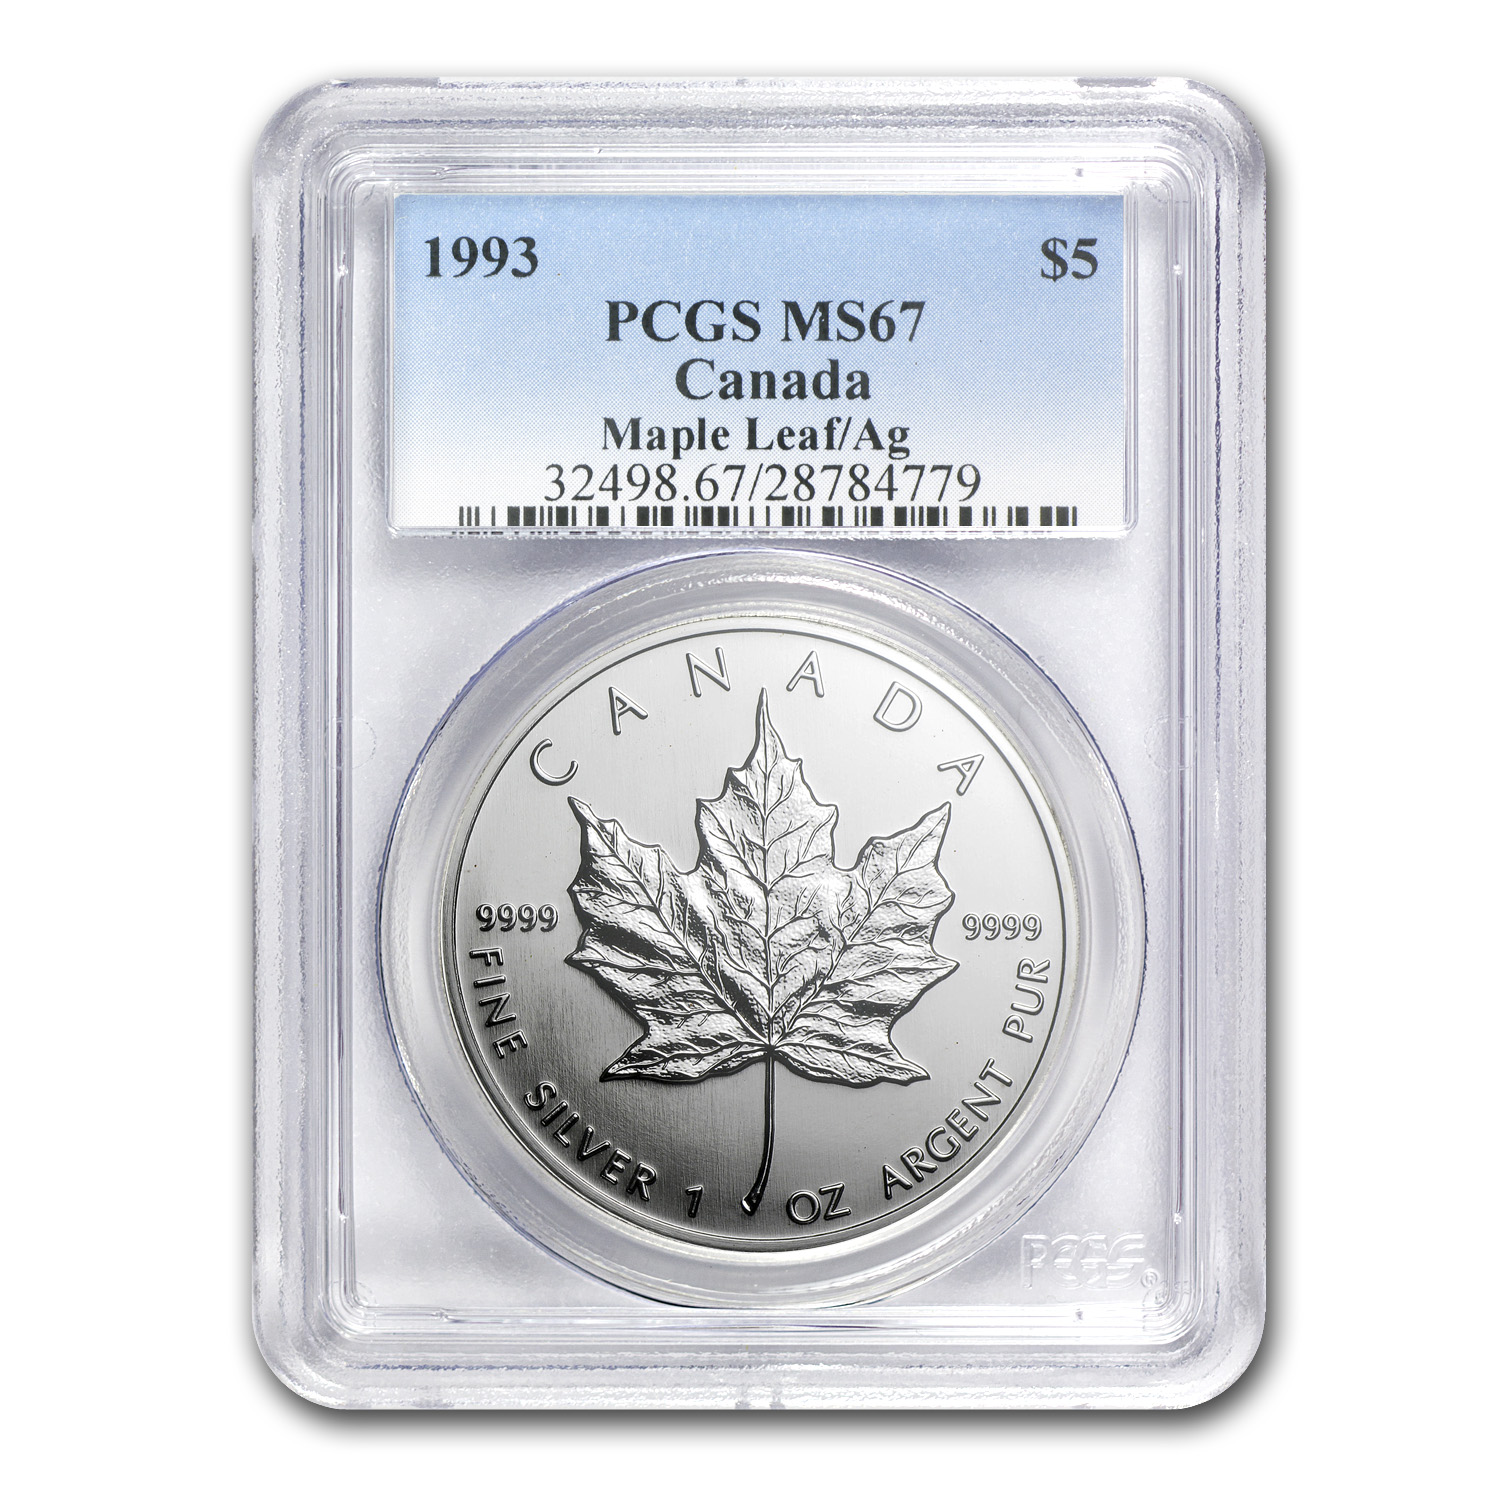 1993 1 oz Silver Canadian Maple Leaf MS-67 PCGS